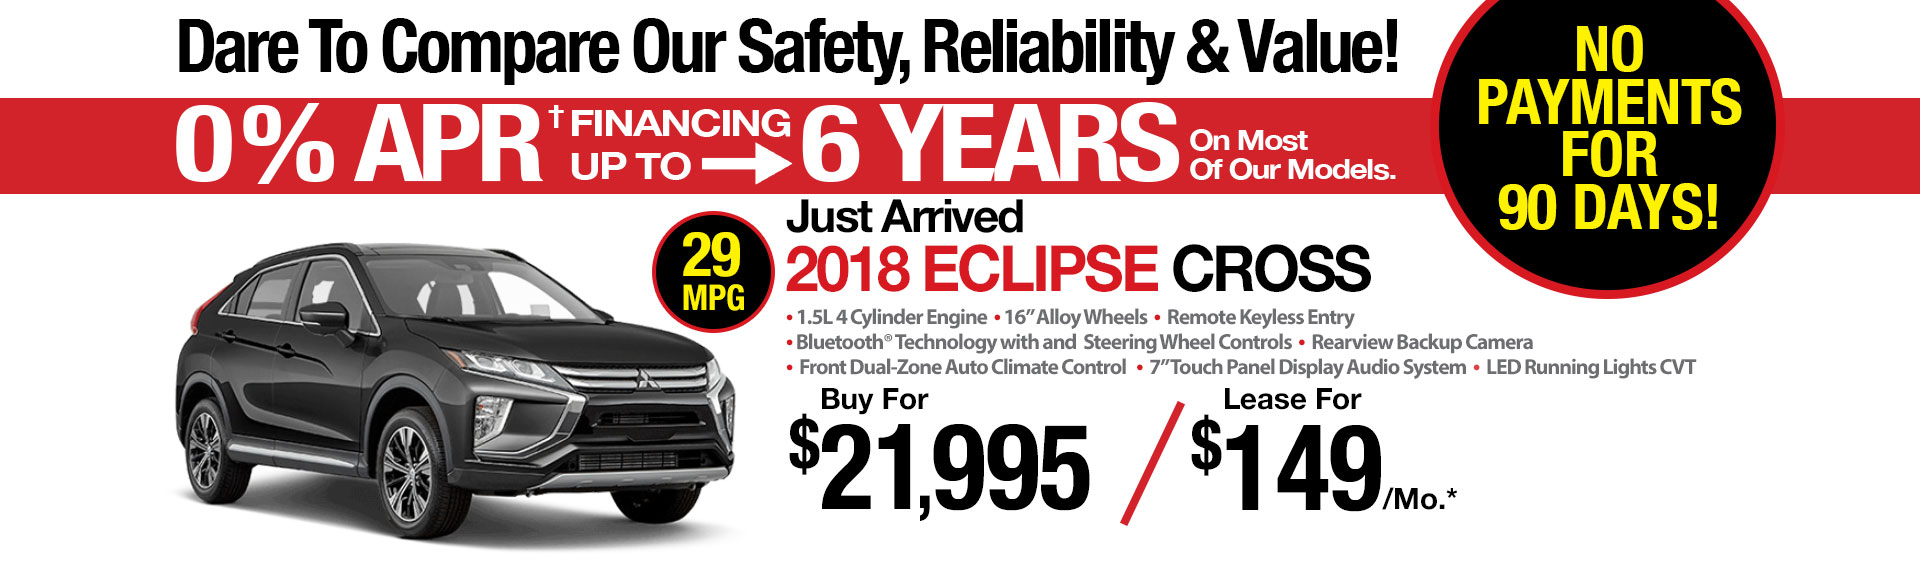 New 2018 Mitsubishi Eclipse Cross AWC Lease Special